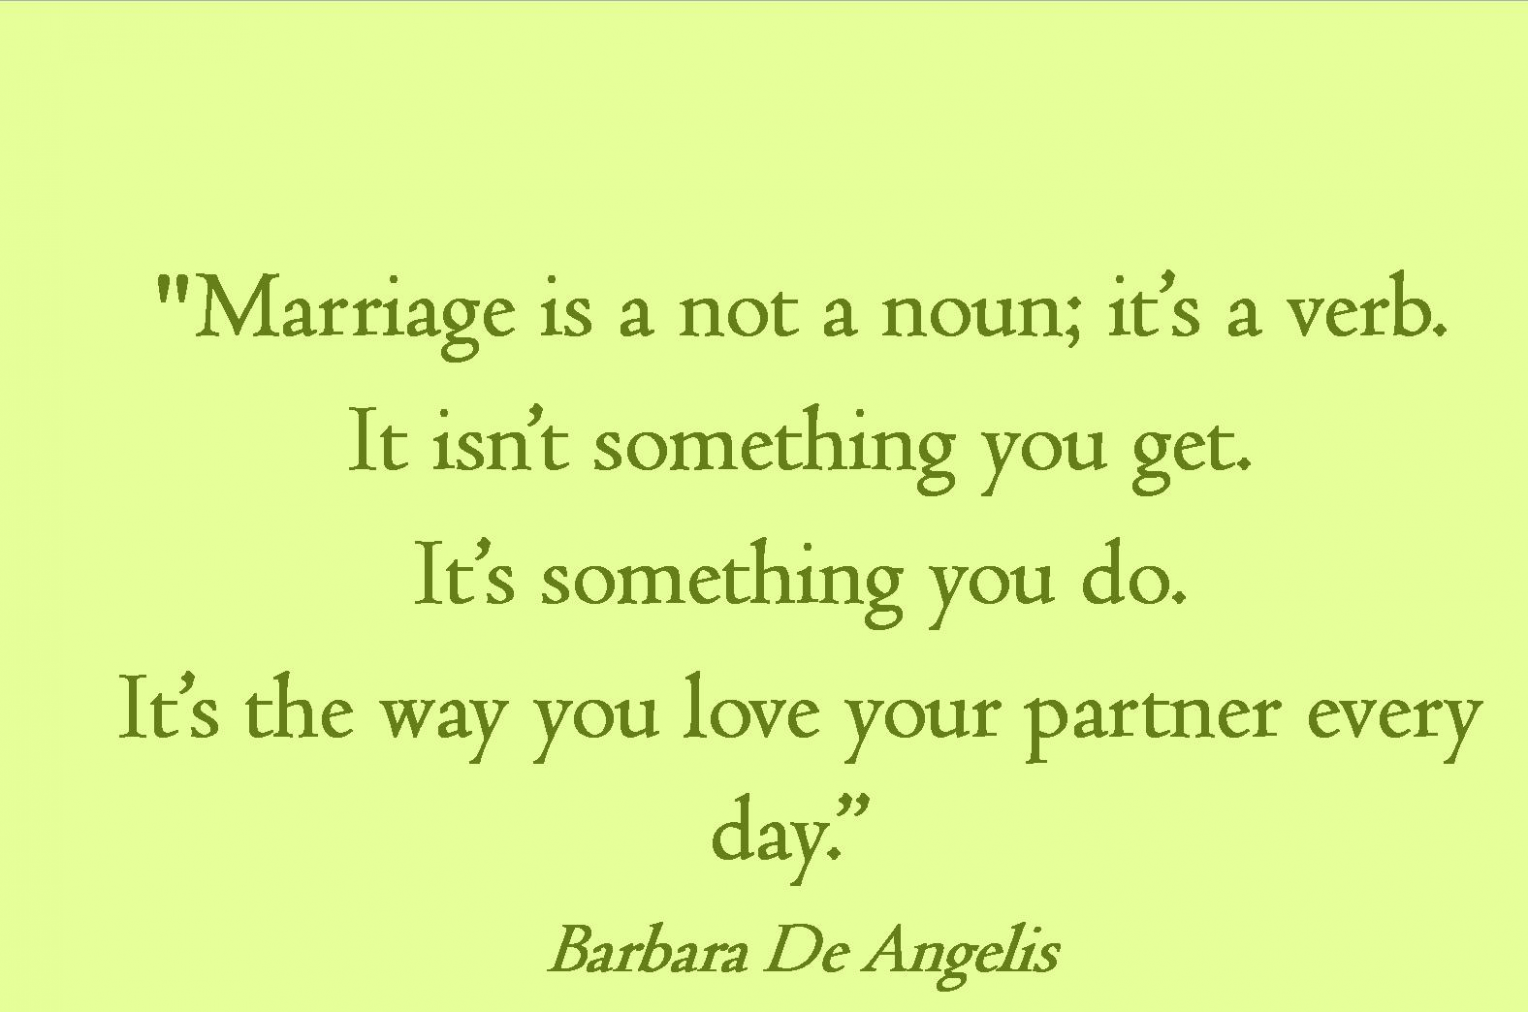 Wedding Quotes Getting Married Marriage Married Quotes Famous Quotes About Marriage Inspirational Quotes With Images